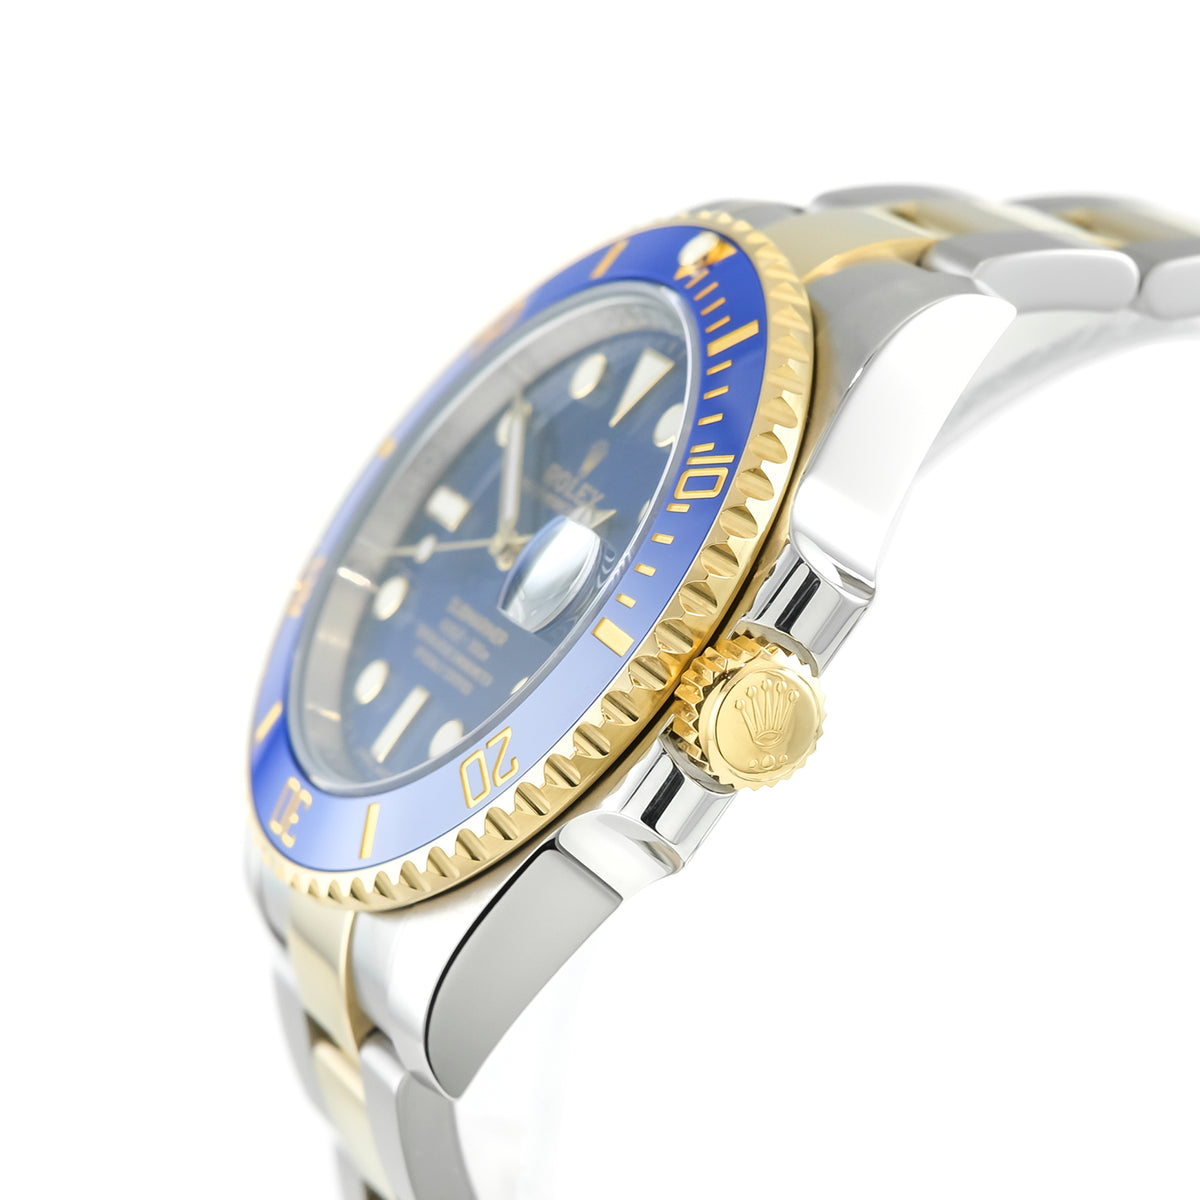 Steel and Gold Bi Metal Rolex Submariner 116613LB